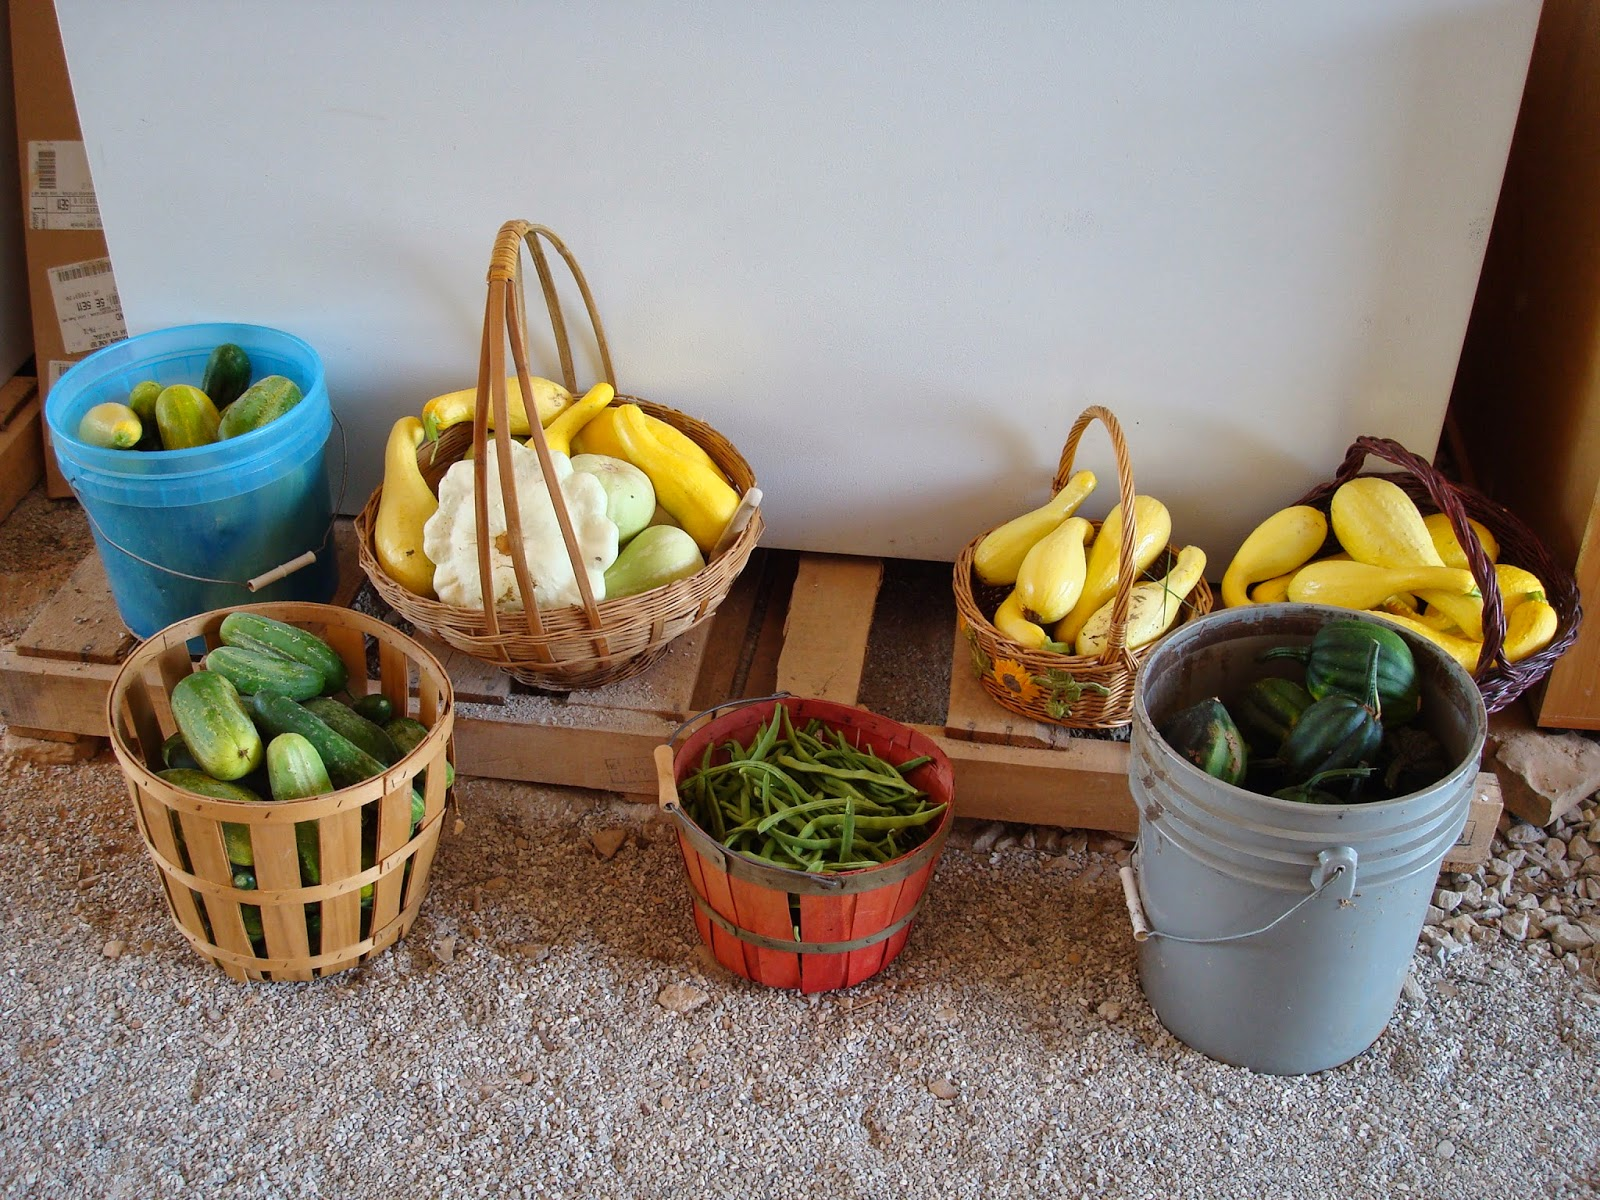 Buckets of garden vegetables including squash, cucumbers and beans